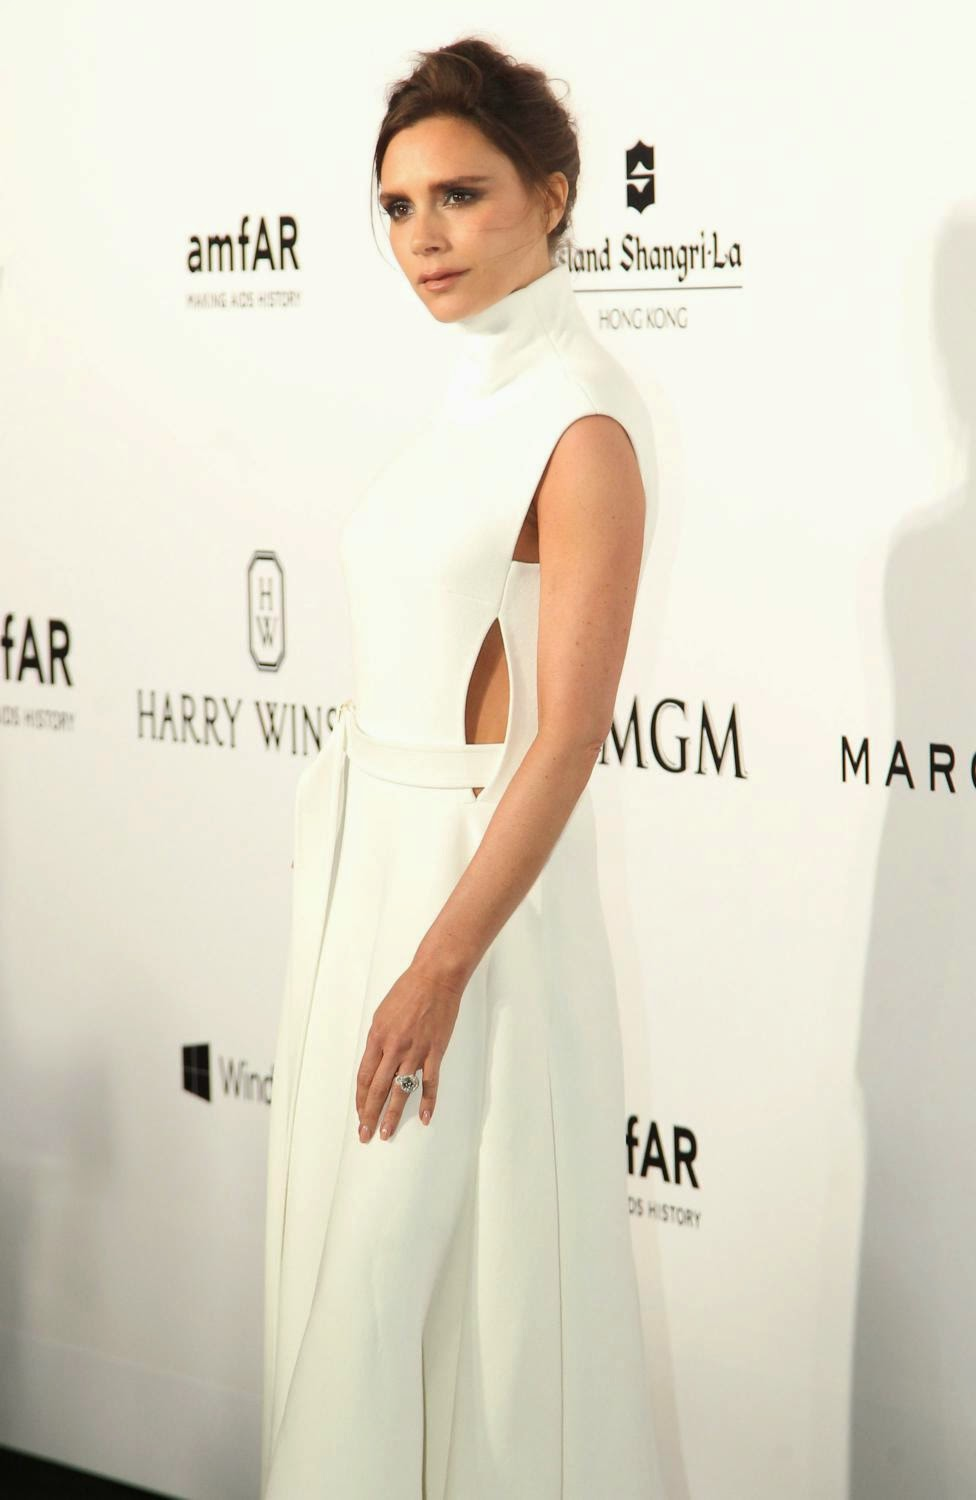 Singer, Businesswoman, Fashion Designer, Model @ Victoria Beckham attends the inaugural Hong Kong amfAR Charity Party